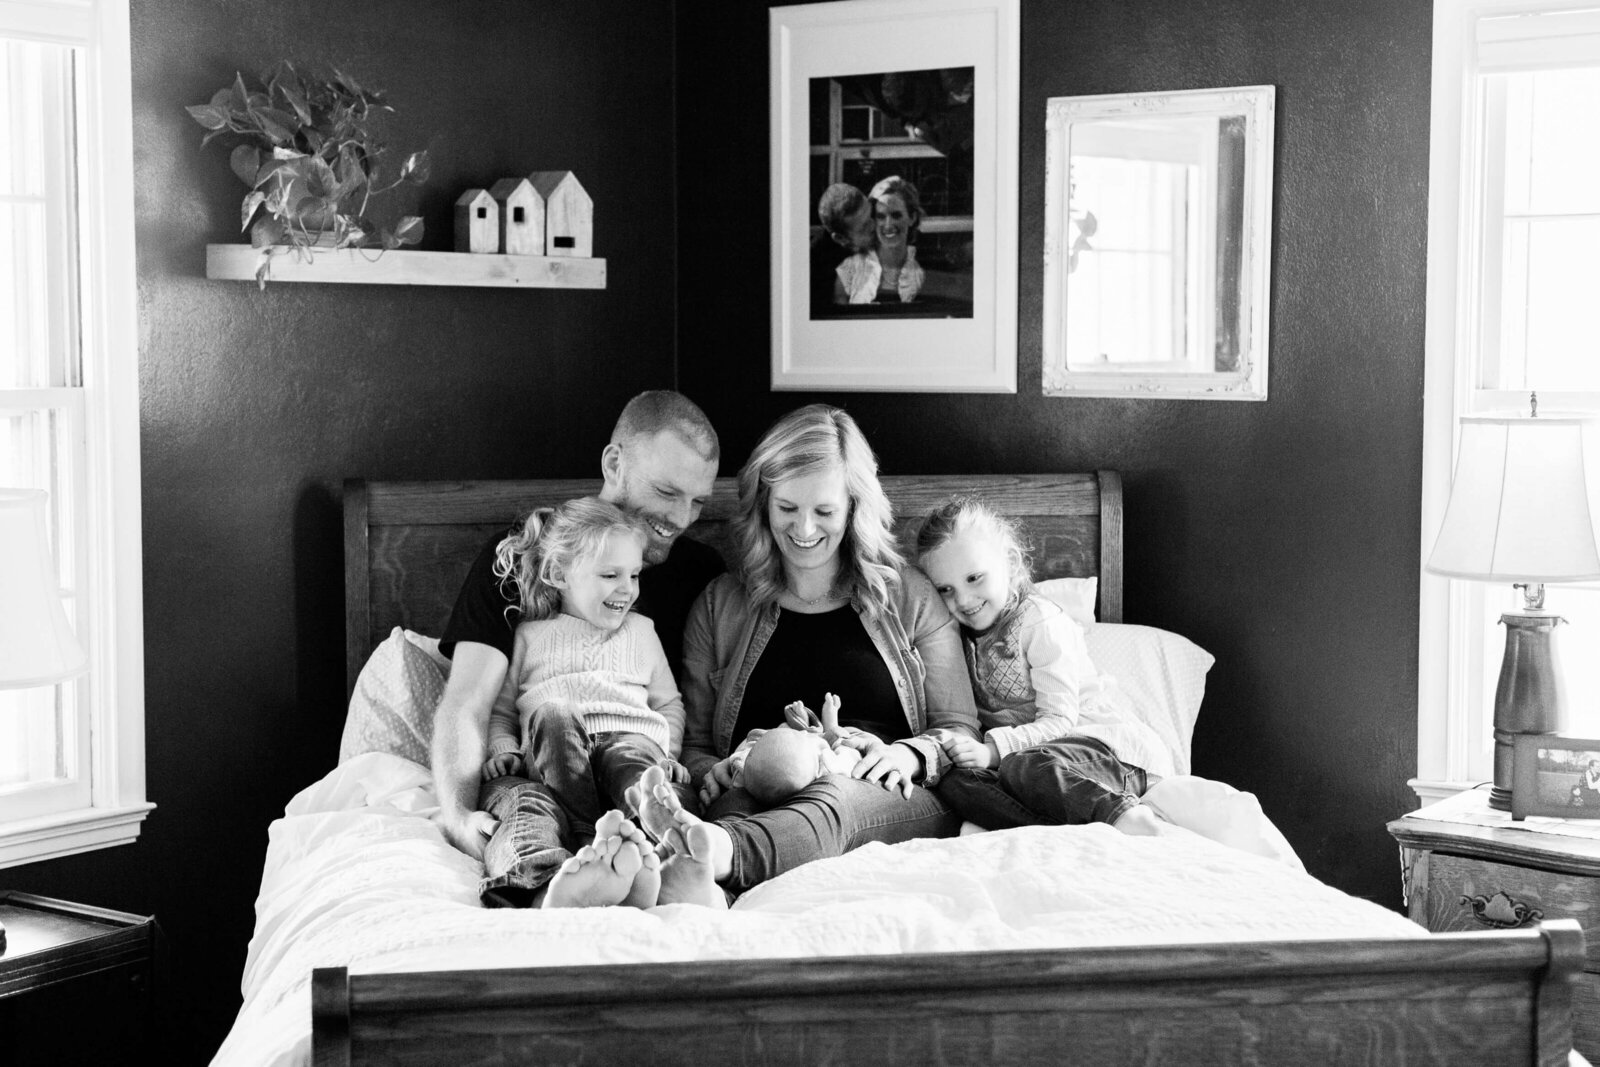 Hoover Family-Abigail Edmons Photography-Fort Wayne Indiana-8